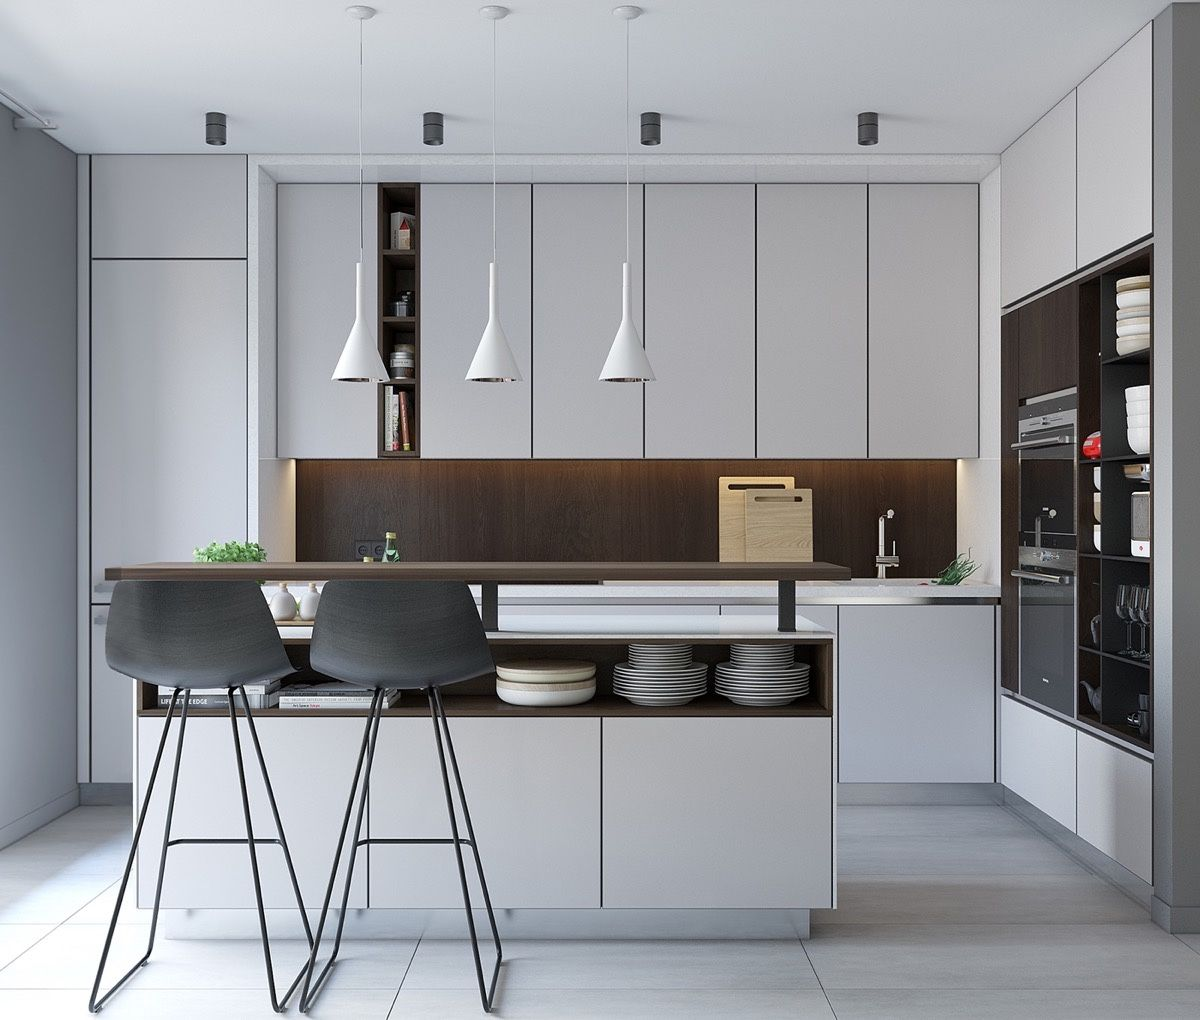 For so many families, the kitchen is a focal point of the home. Not only do  parents spend hours each week cooking, children sidle up to the kitchen bar  for